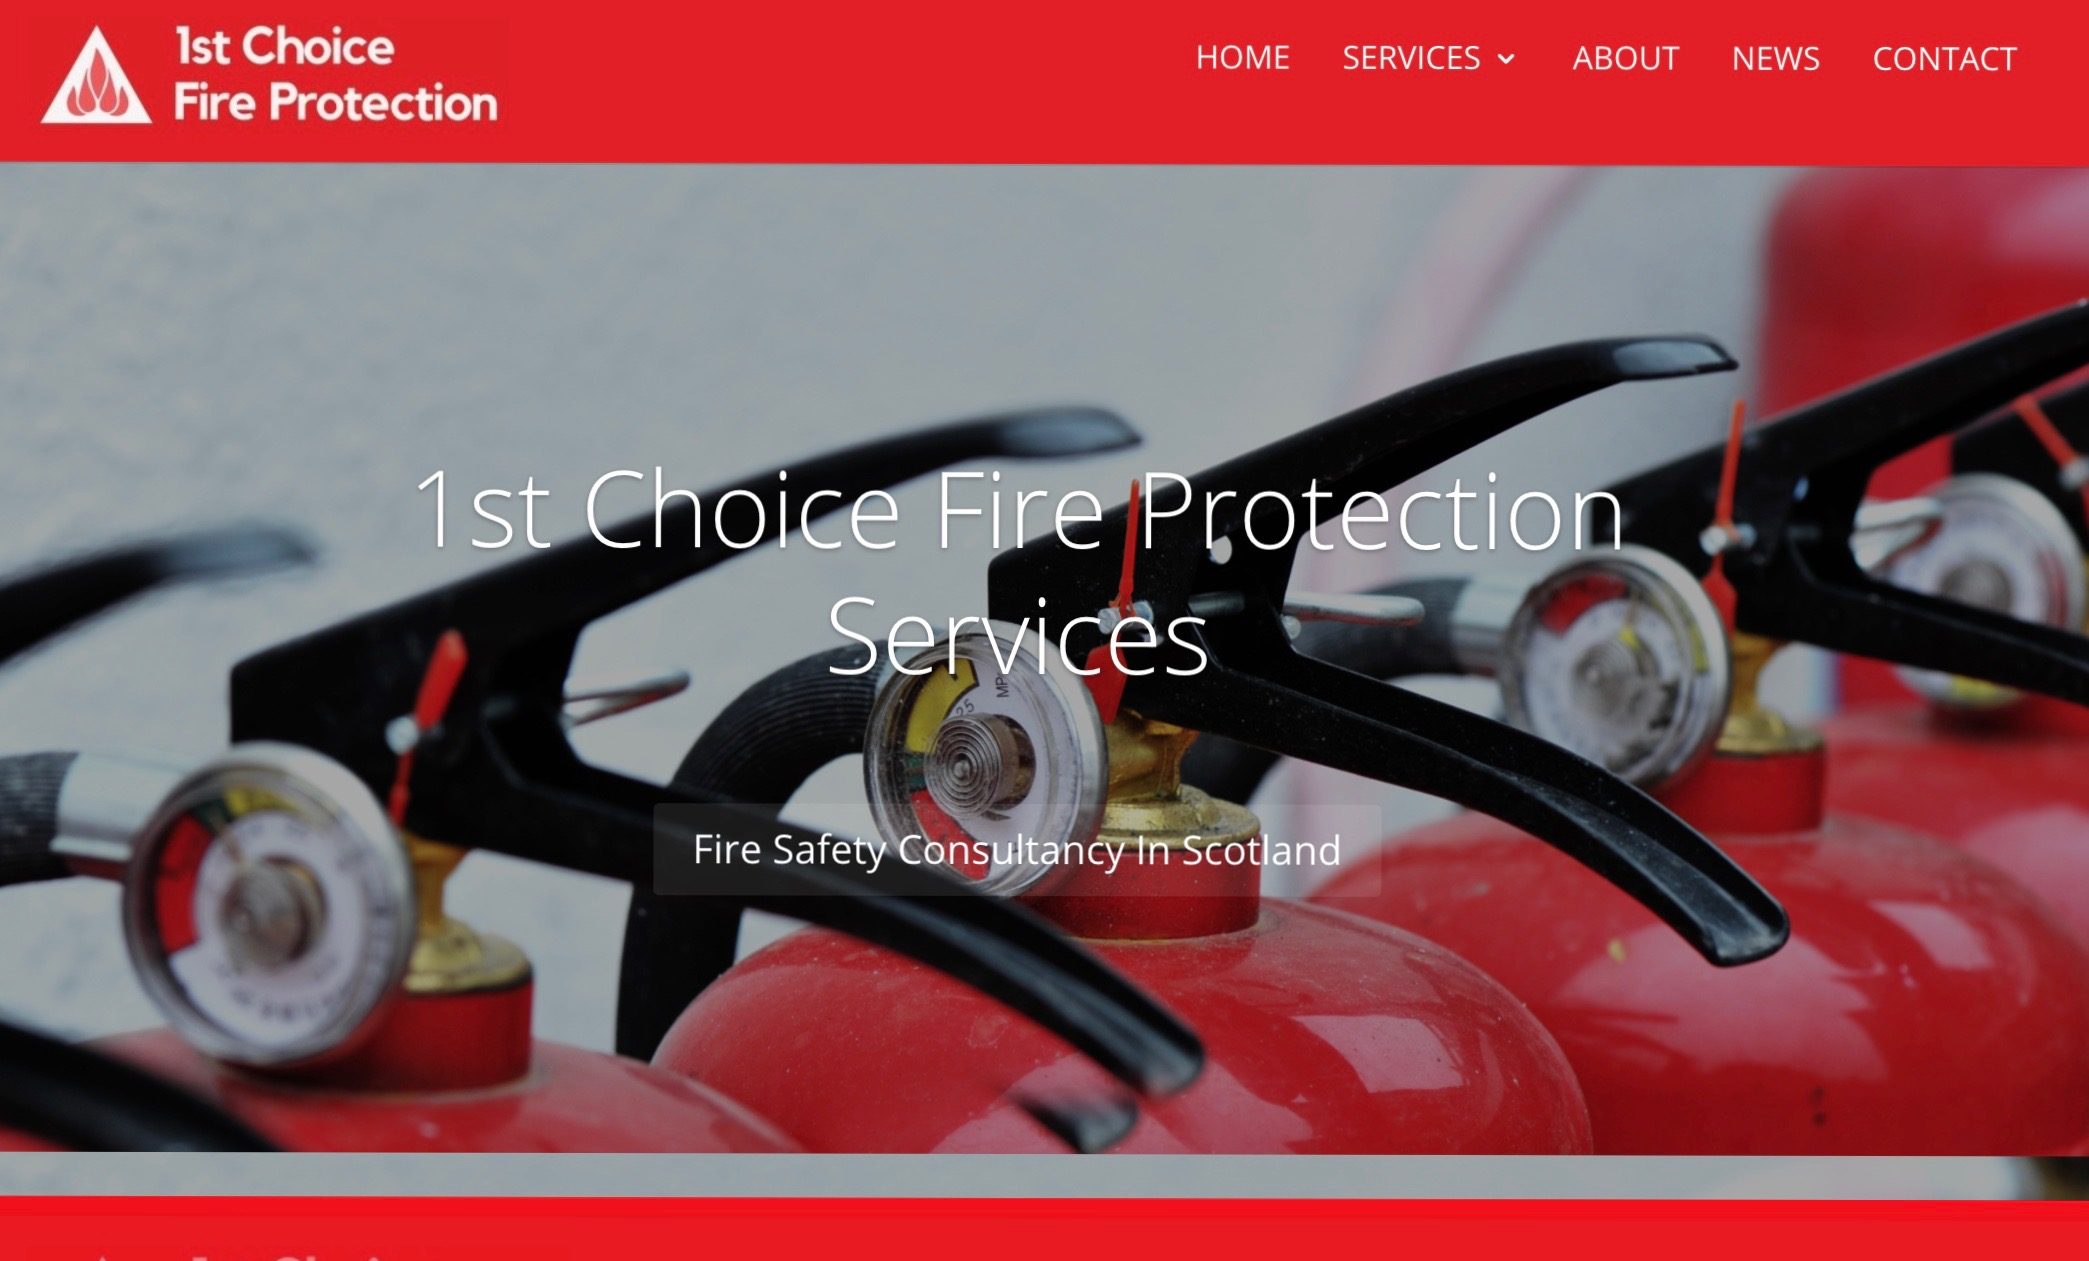 1st Choice Fire Protection Services